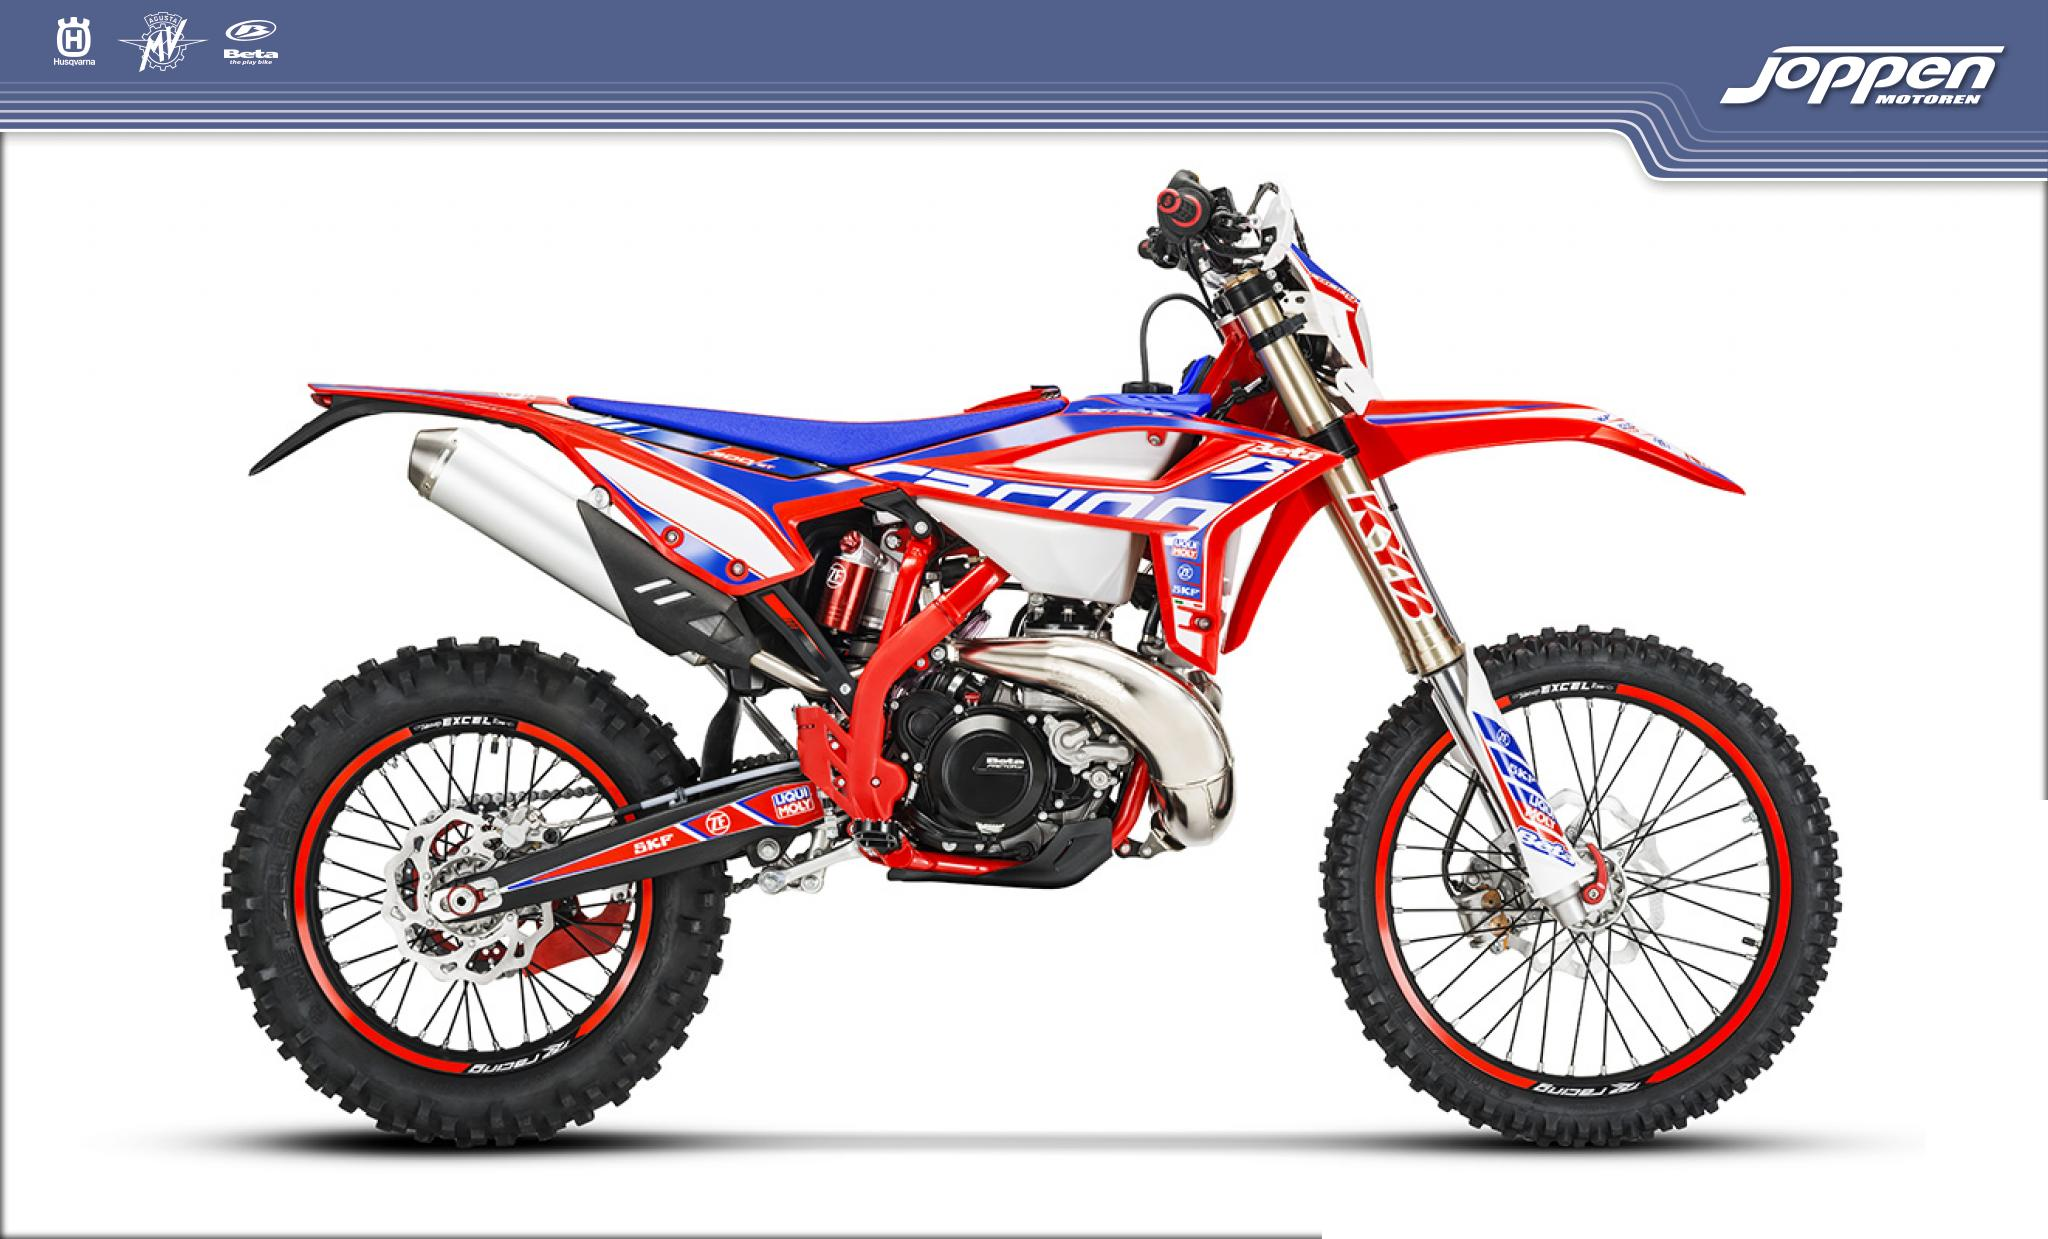 Beta RR300 2T Racing 2020 kl=blauw/rood - Off road